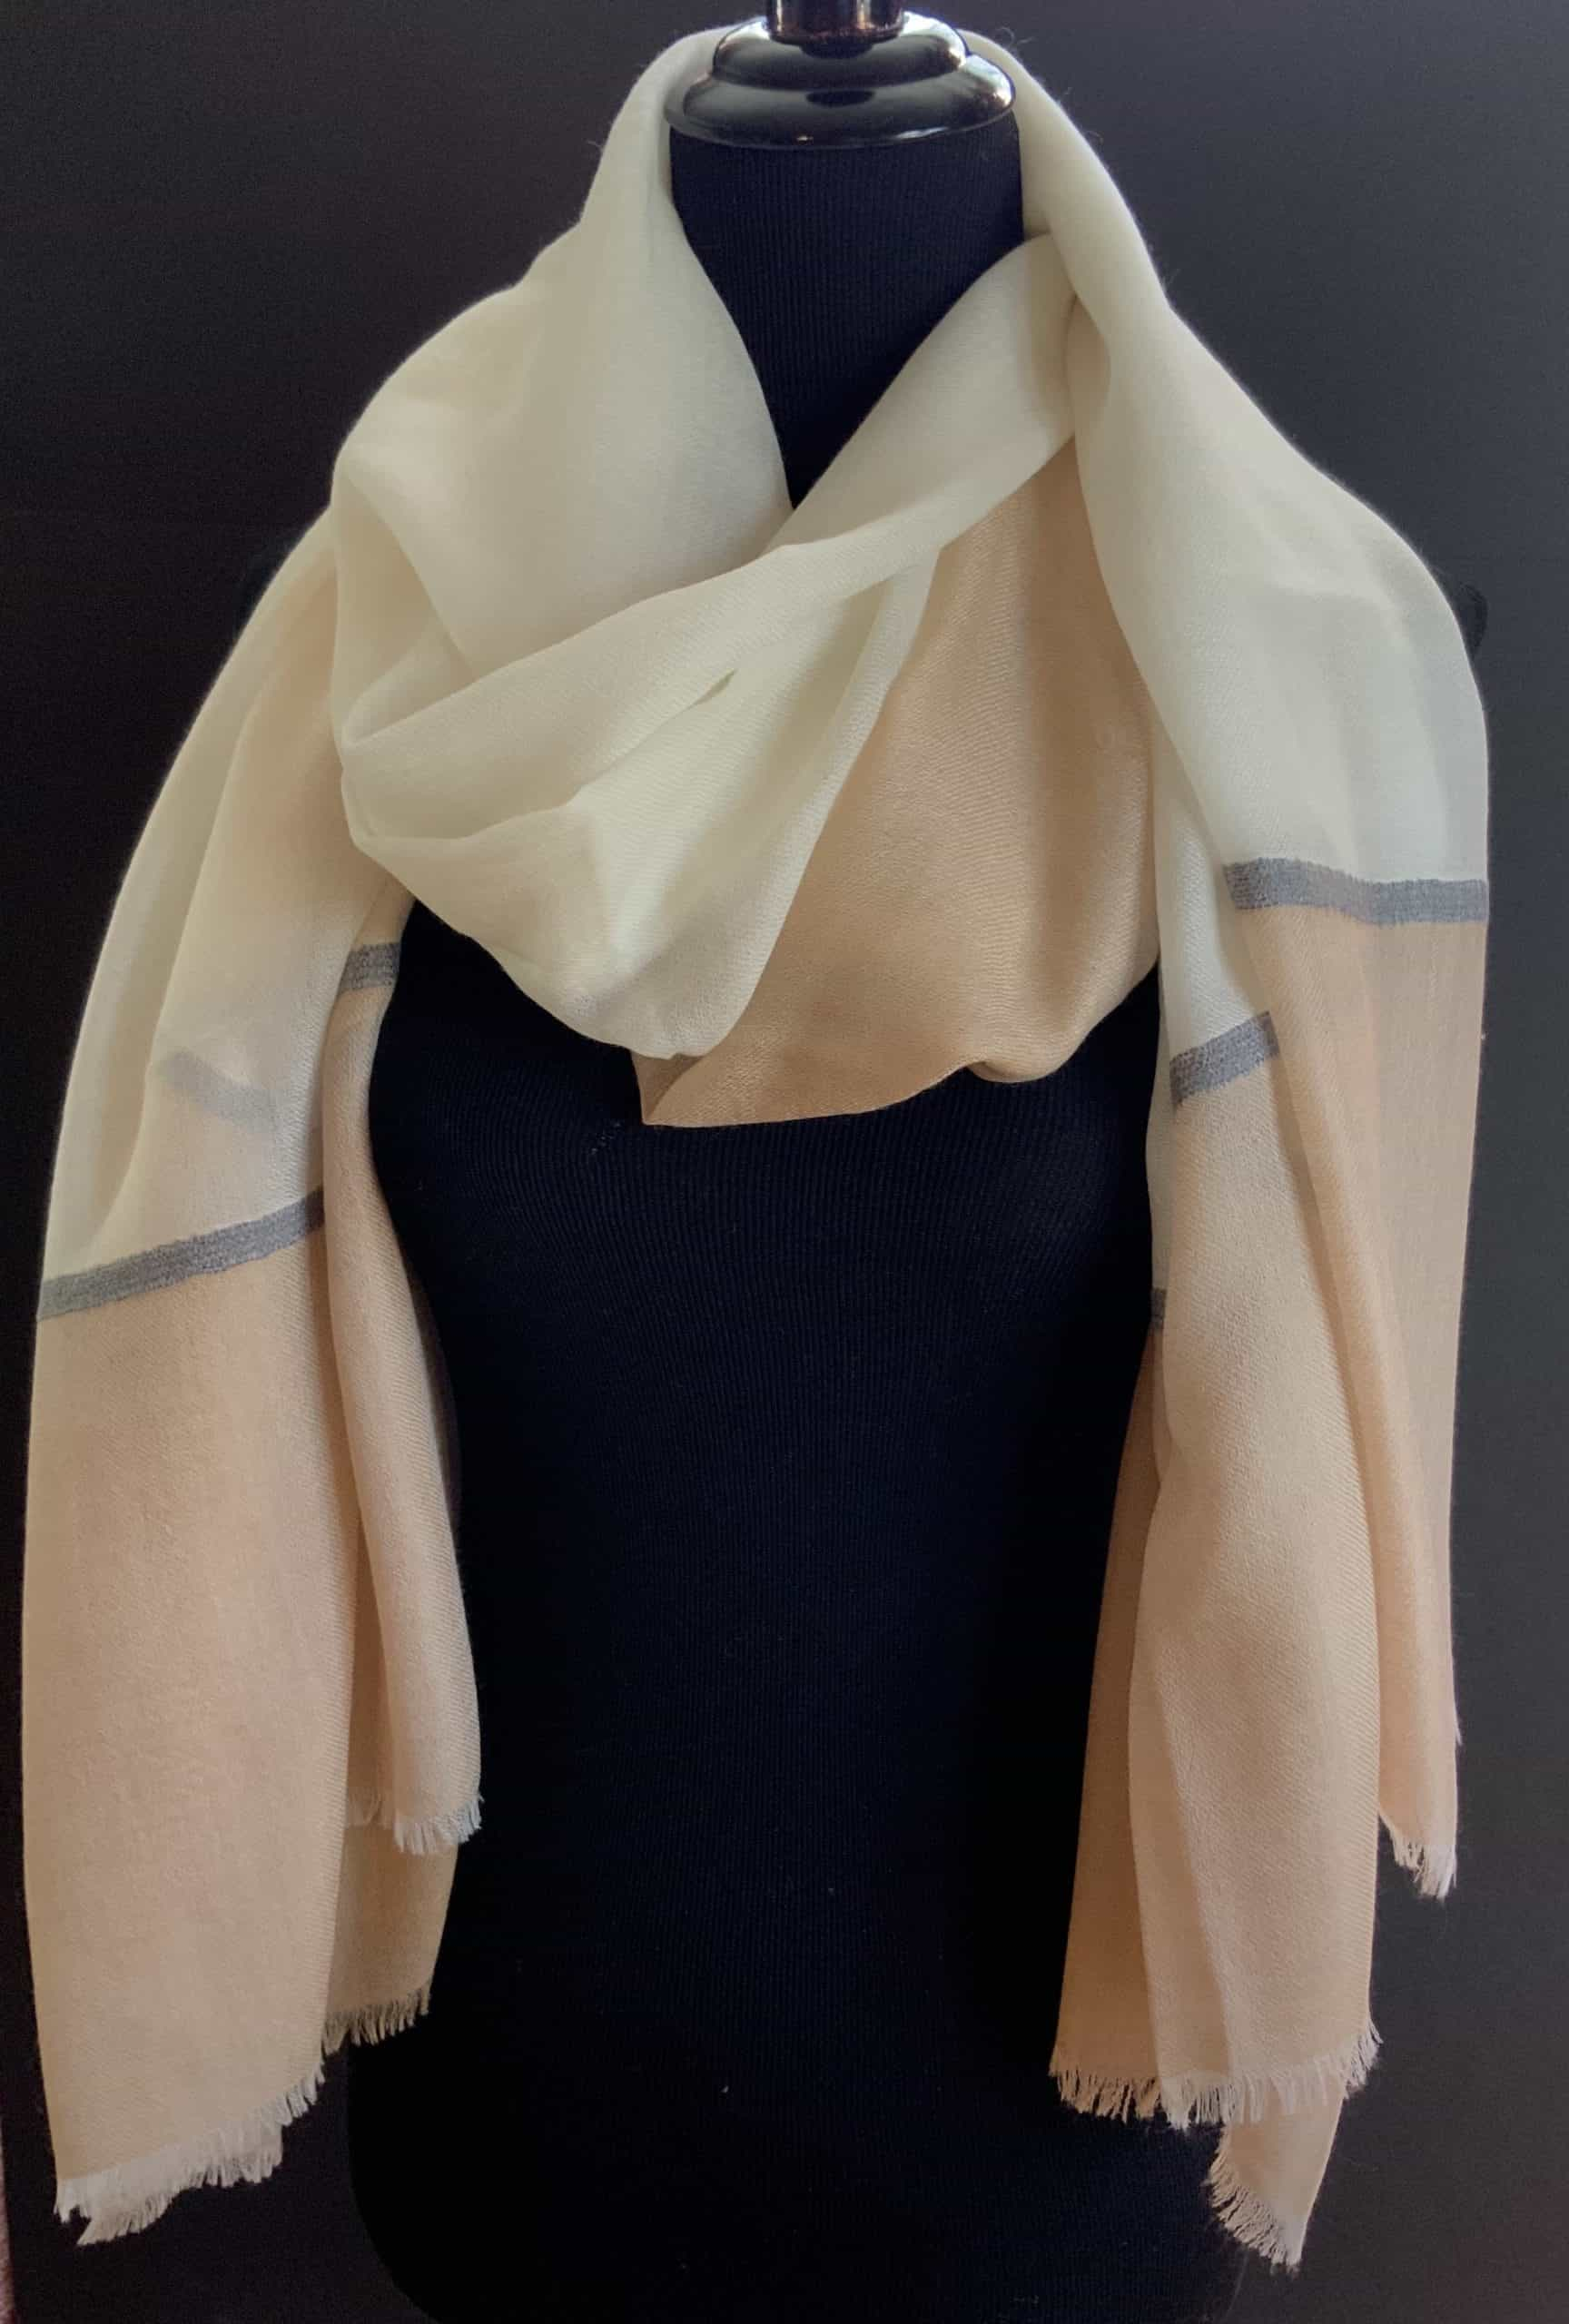 luxurious cashmere for gifting